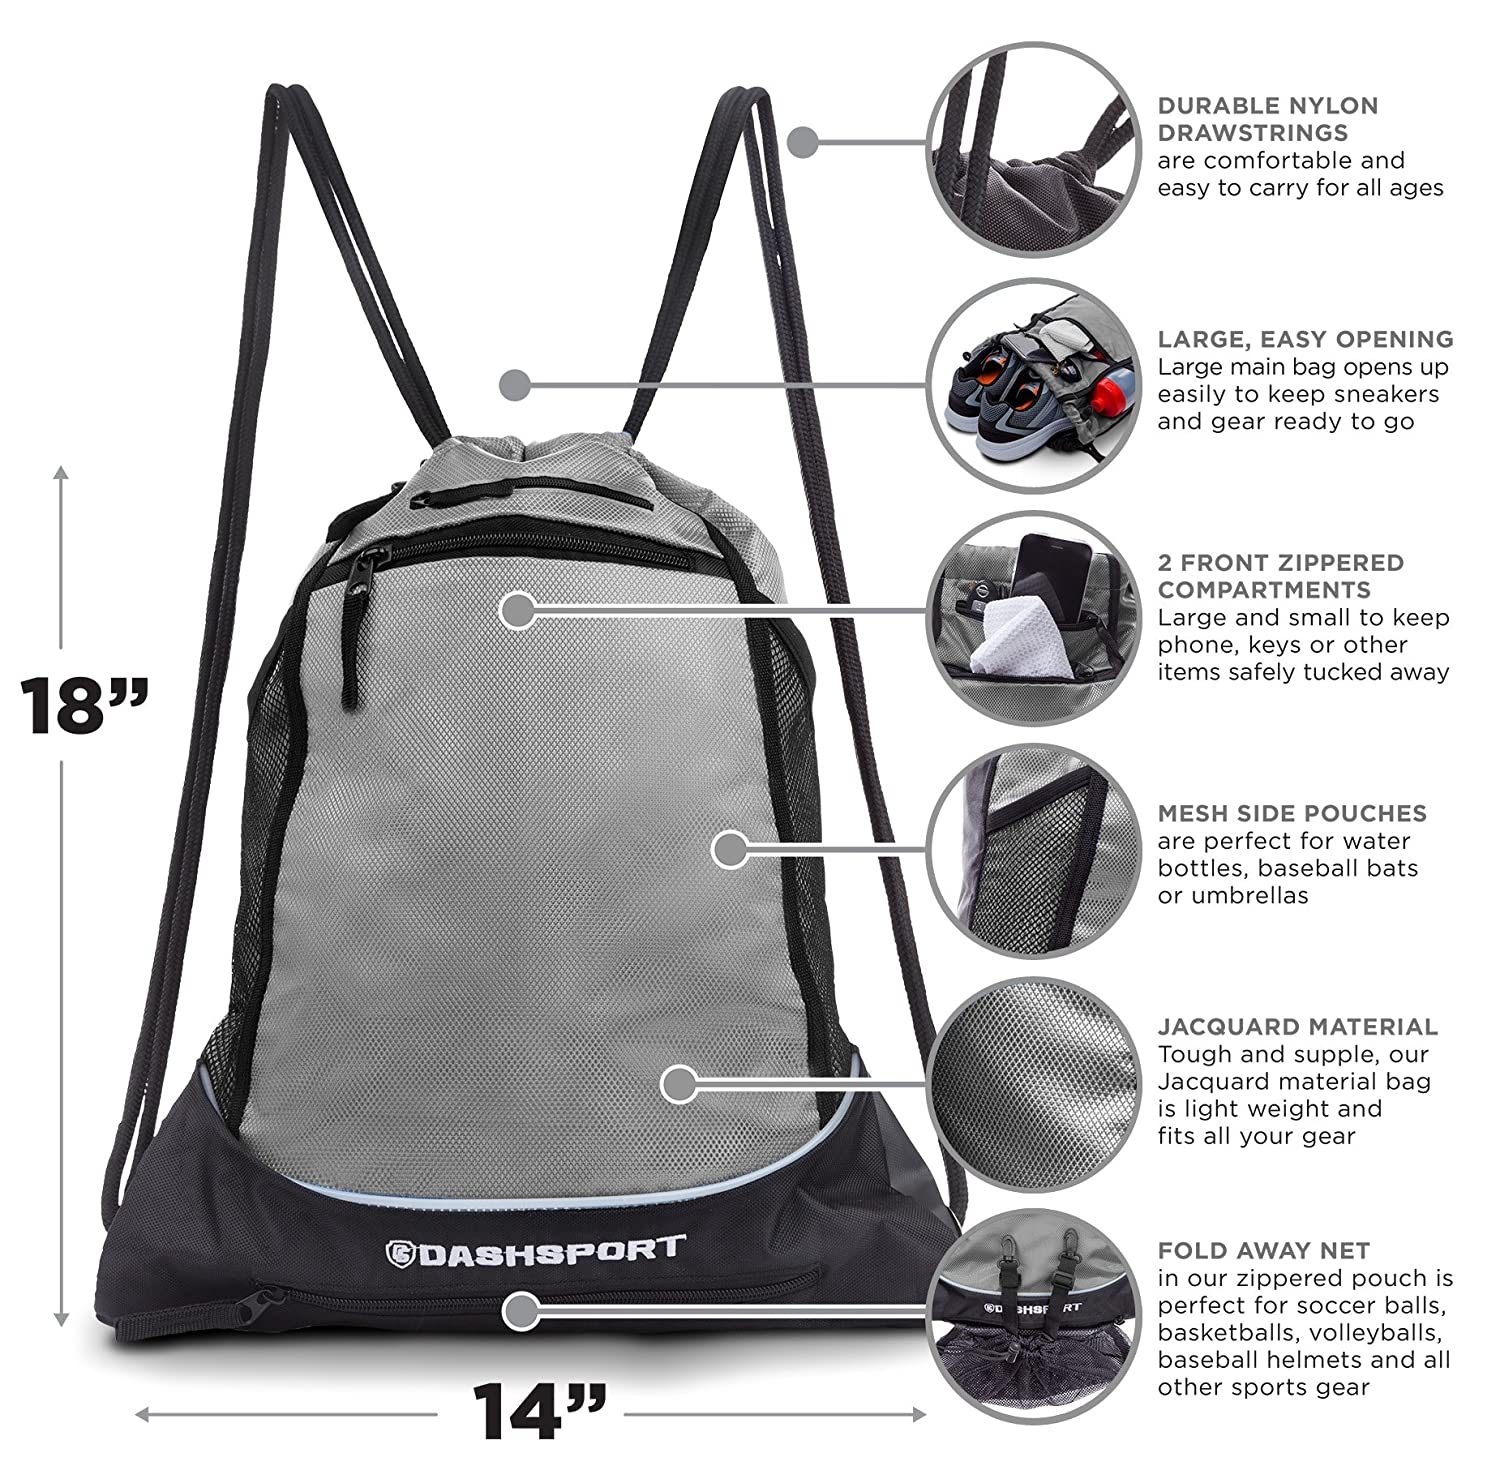 8ddedc8e6cf2 Drawstring Bag with Mesh Net - Perfect Sackpack with Ball Net for All  Sports - Gym Bag for Men and Women, Tote Bag, Sports Sack, Light Backpack,  ...